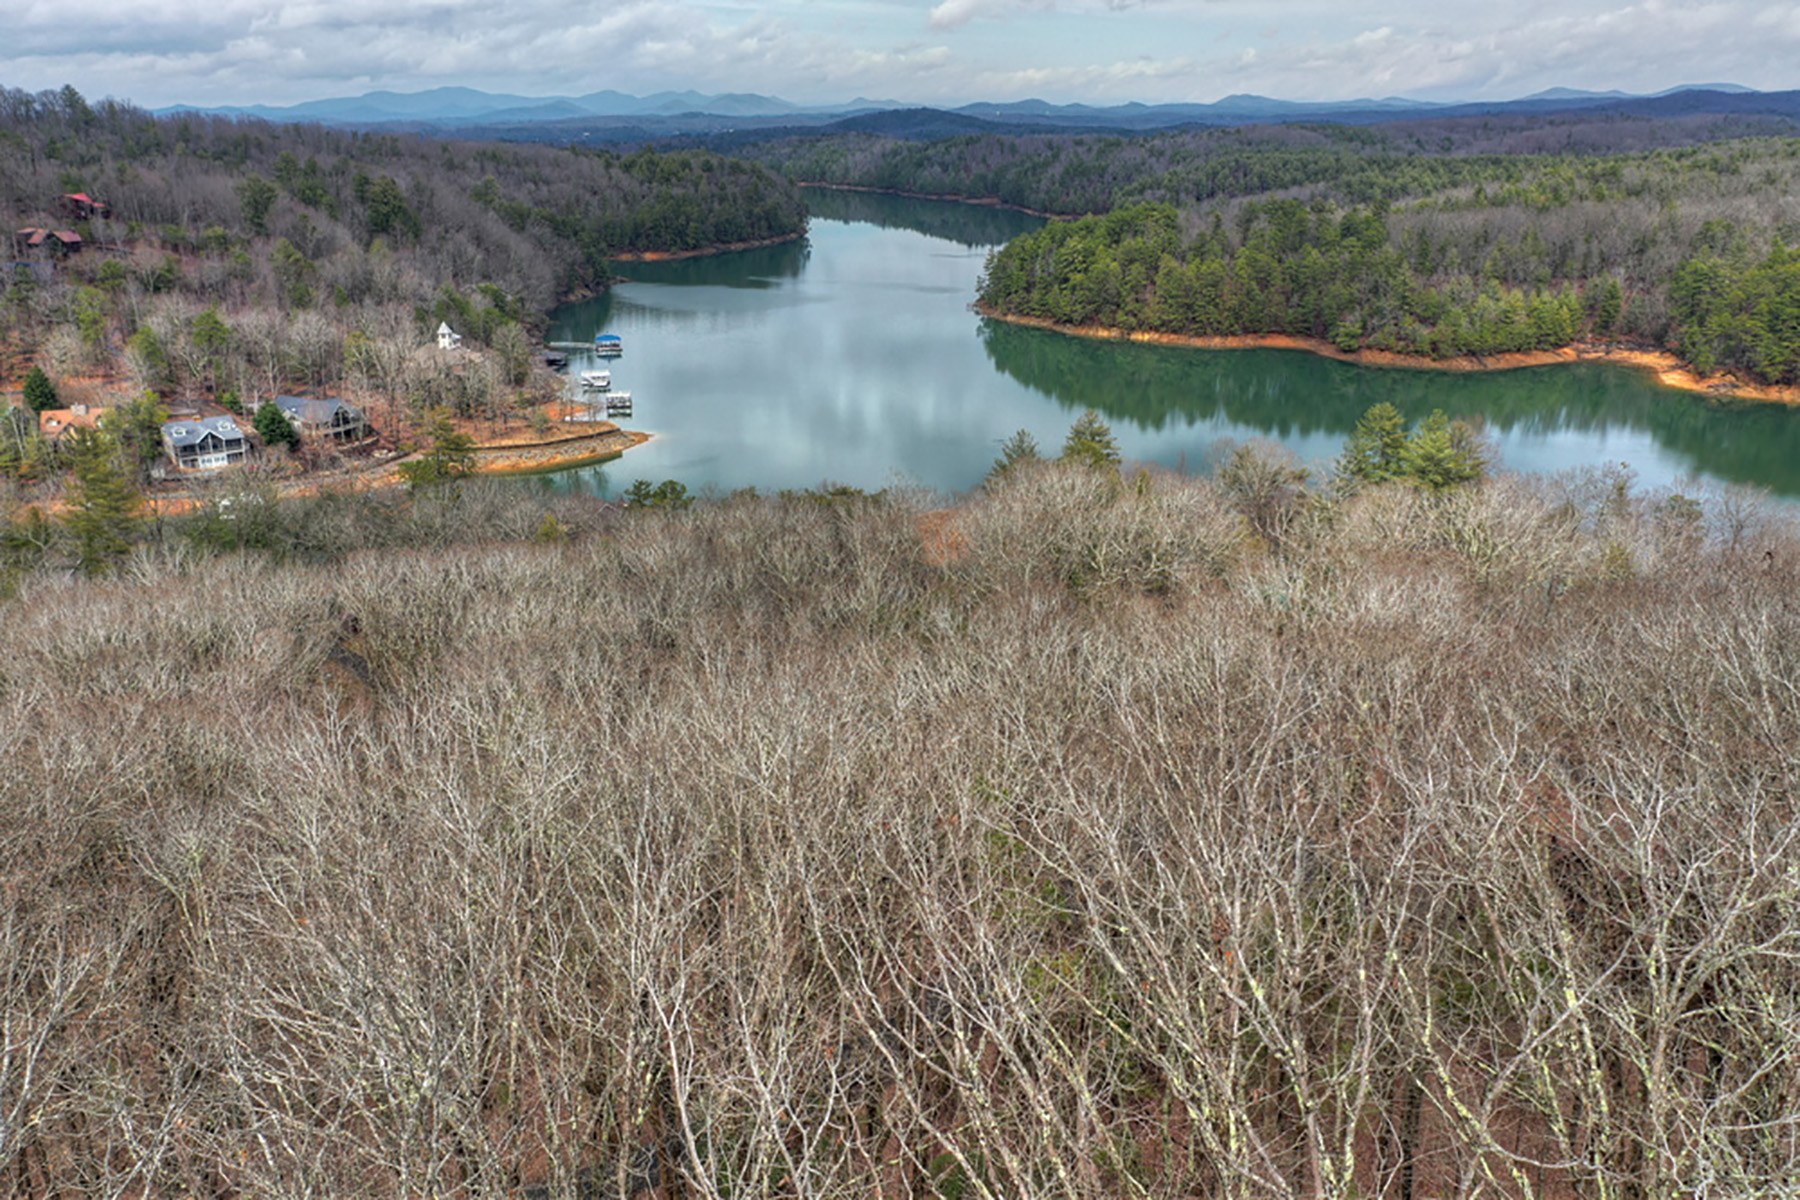 Land for Sale at Beautiful lot in gated community with views of Lake Blue Ridge 110 Shady Falls Drive Blue Ridge, Georgia 30513 United States